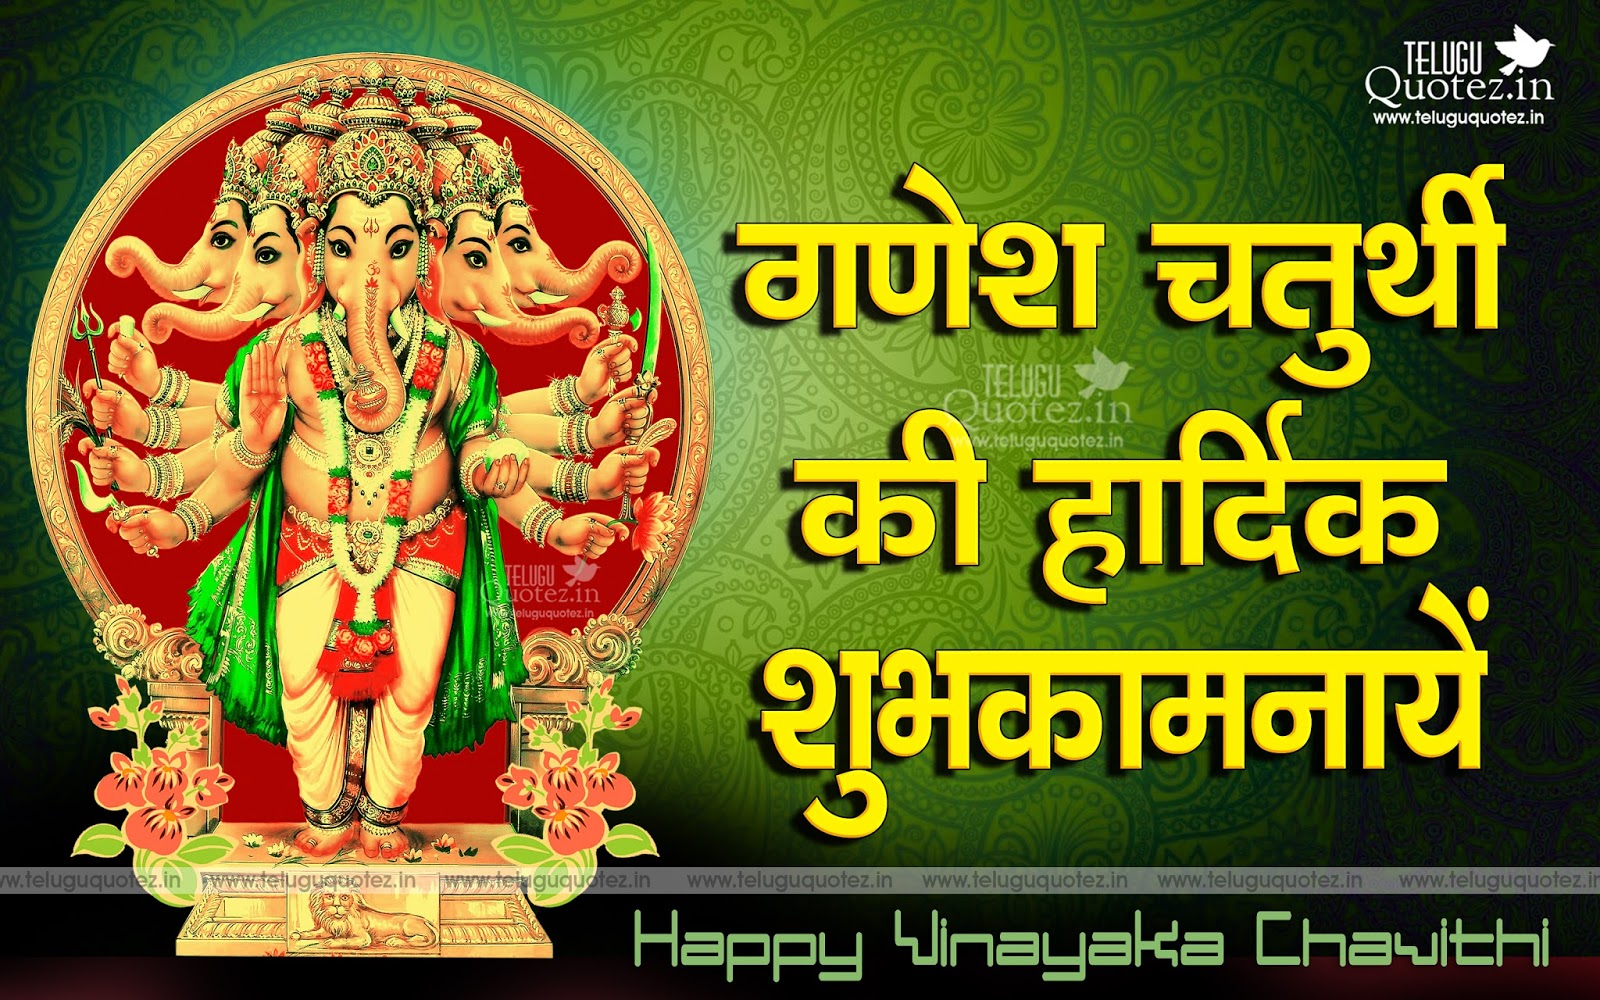 Happy Ganesh Chaturthi Wishes Greeting Card Images & Picture in Hindi For Facebook & Google+